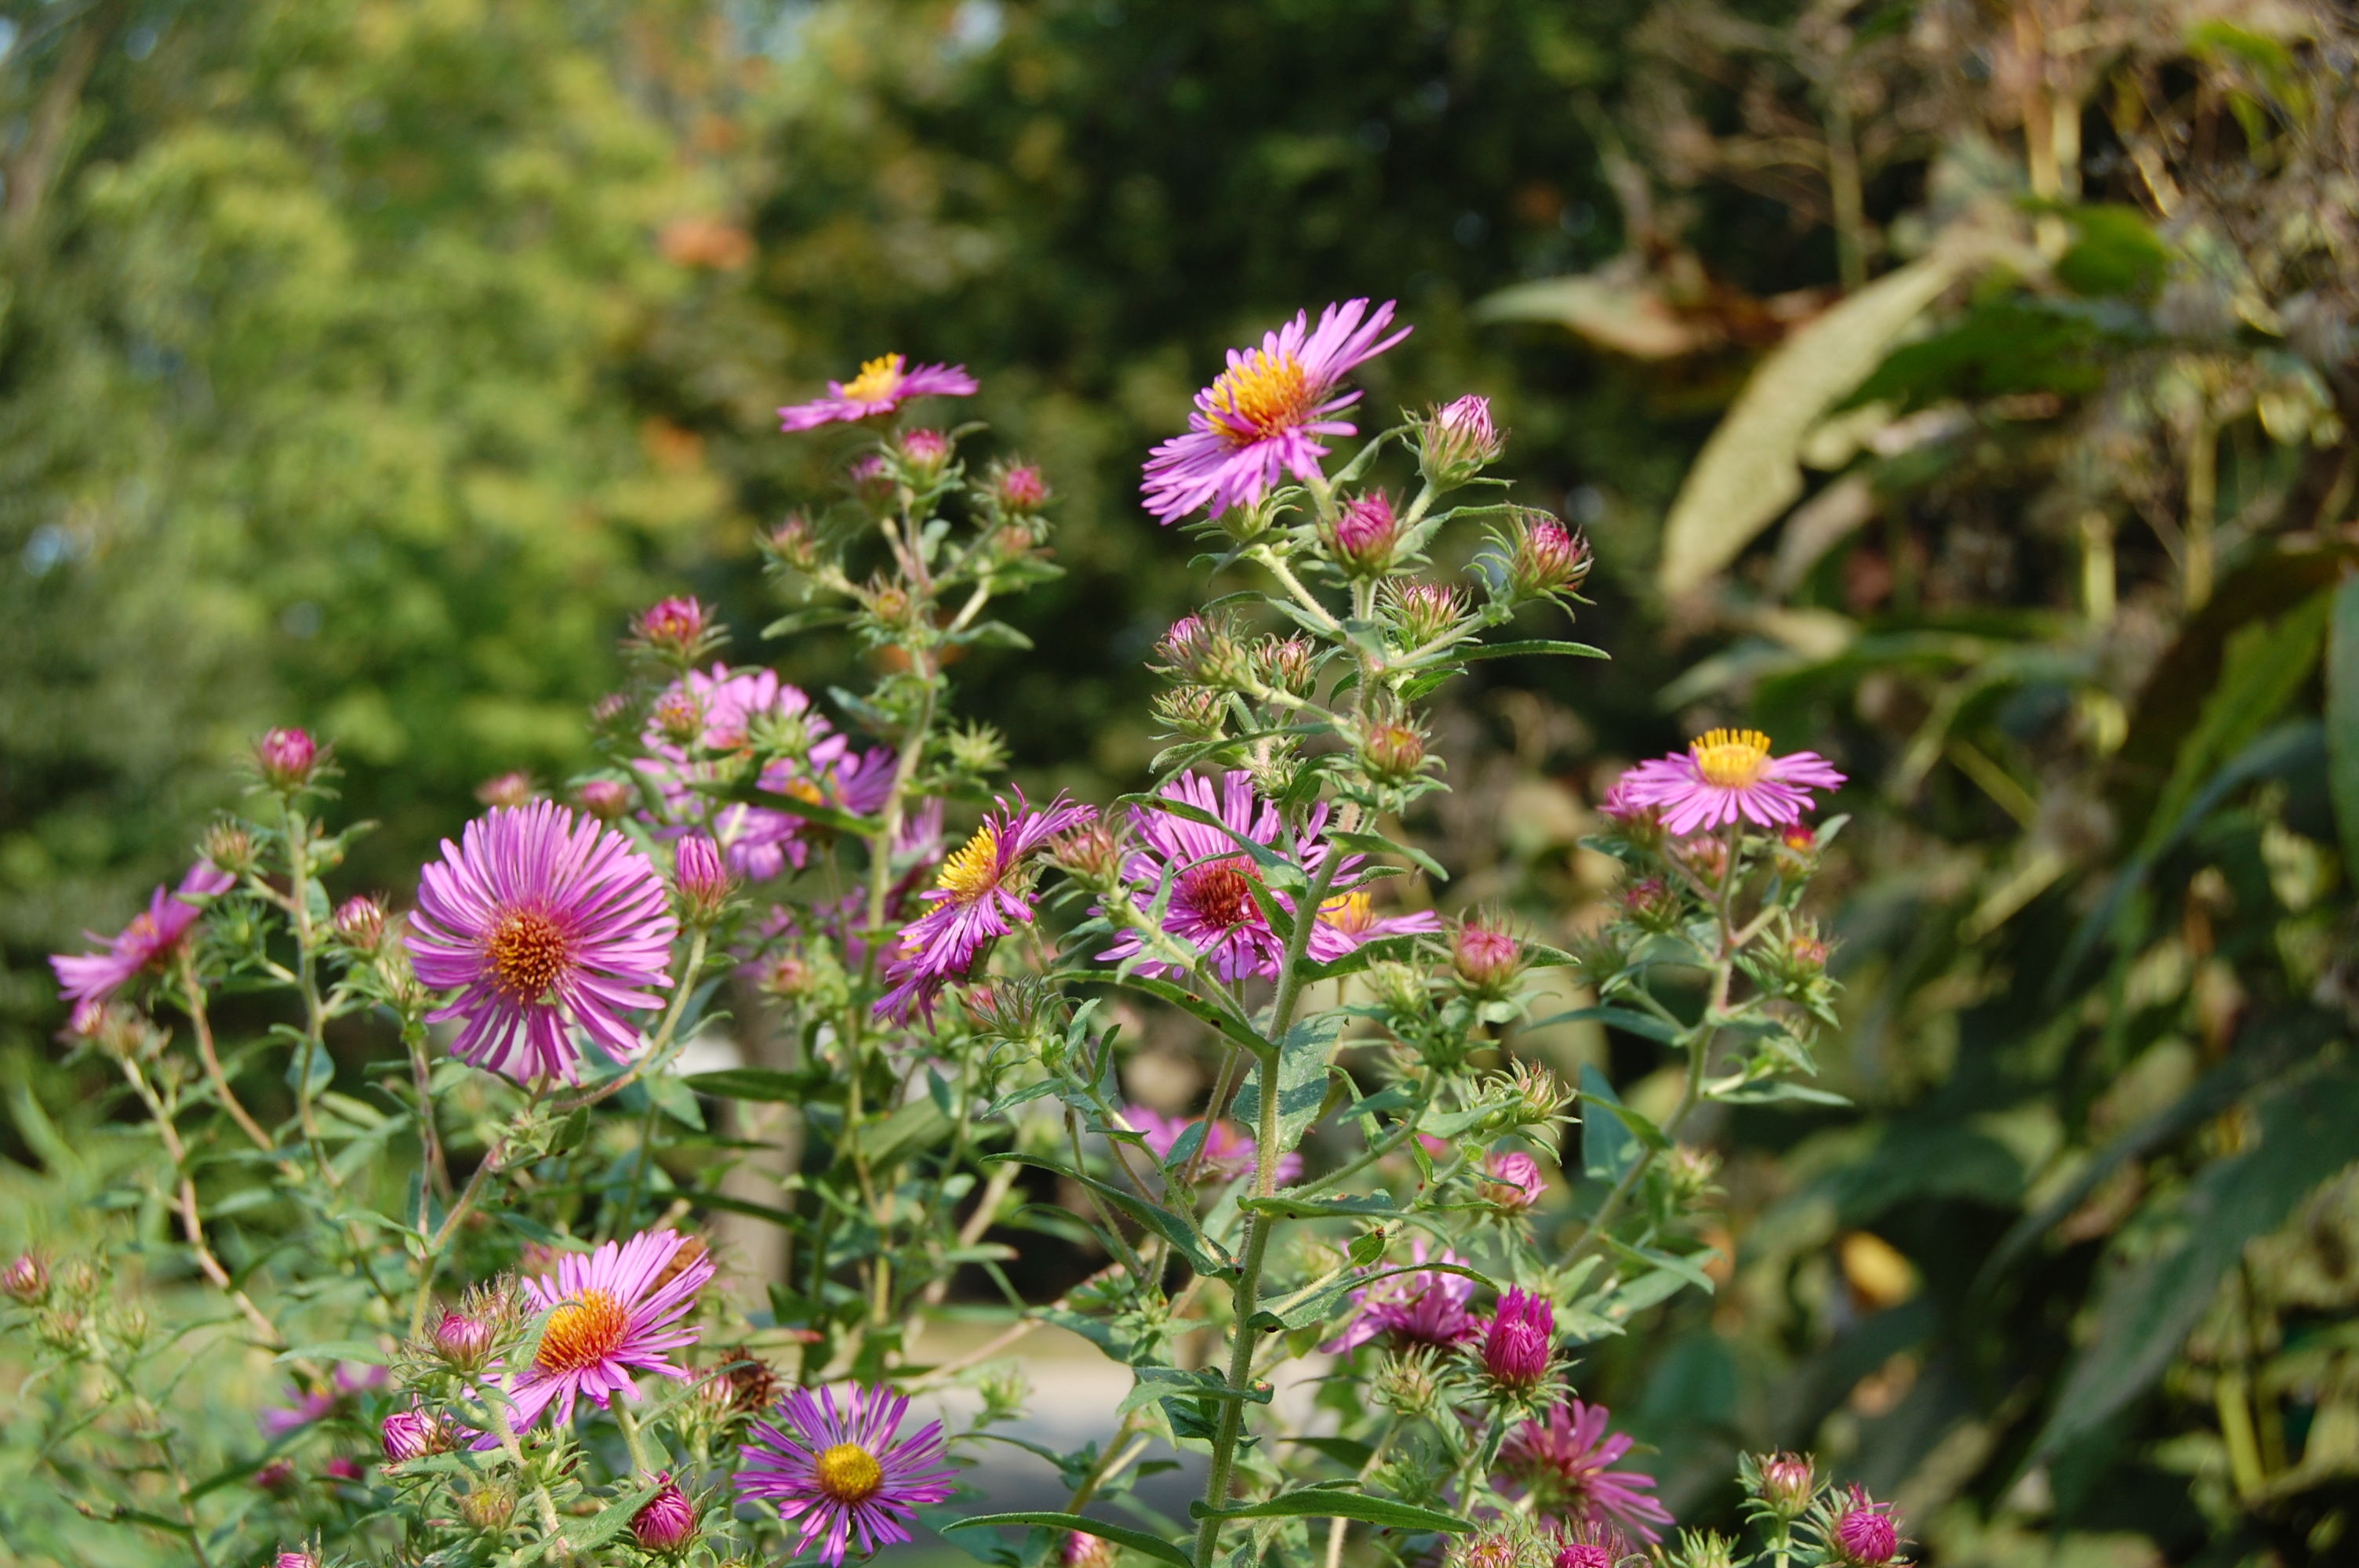 An astonishing variety of mostly wild asters gardeninacity new england aster with pink flowers mightylinksfo Image collections